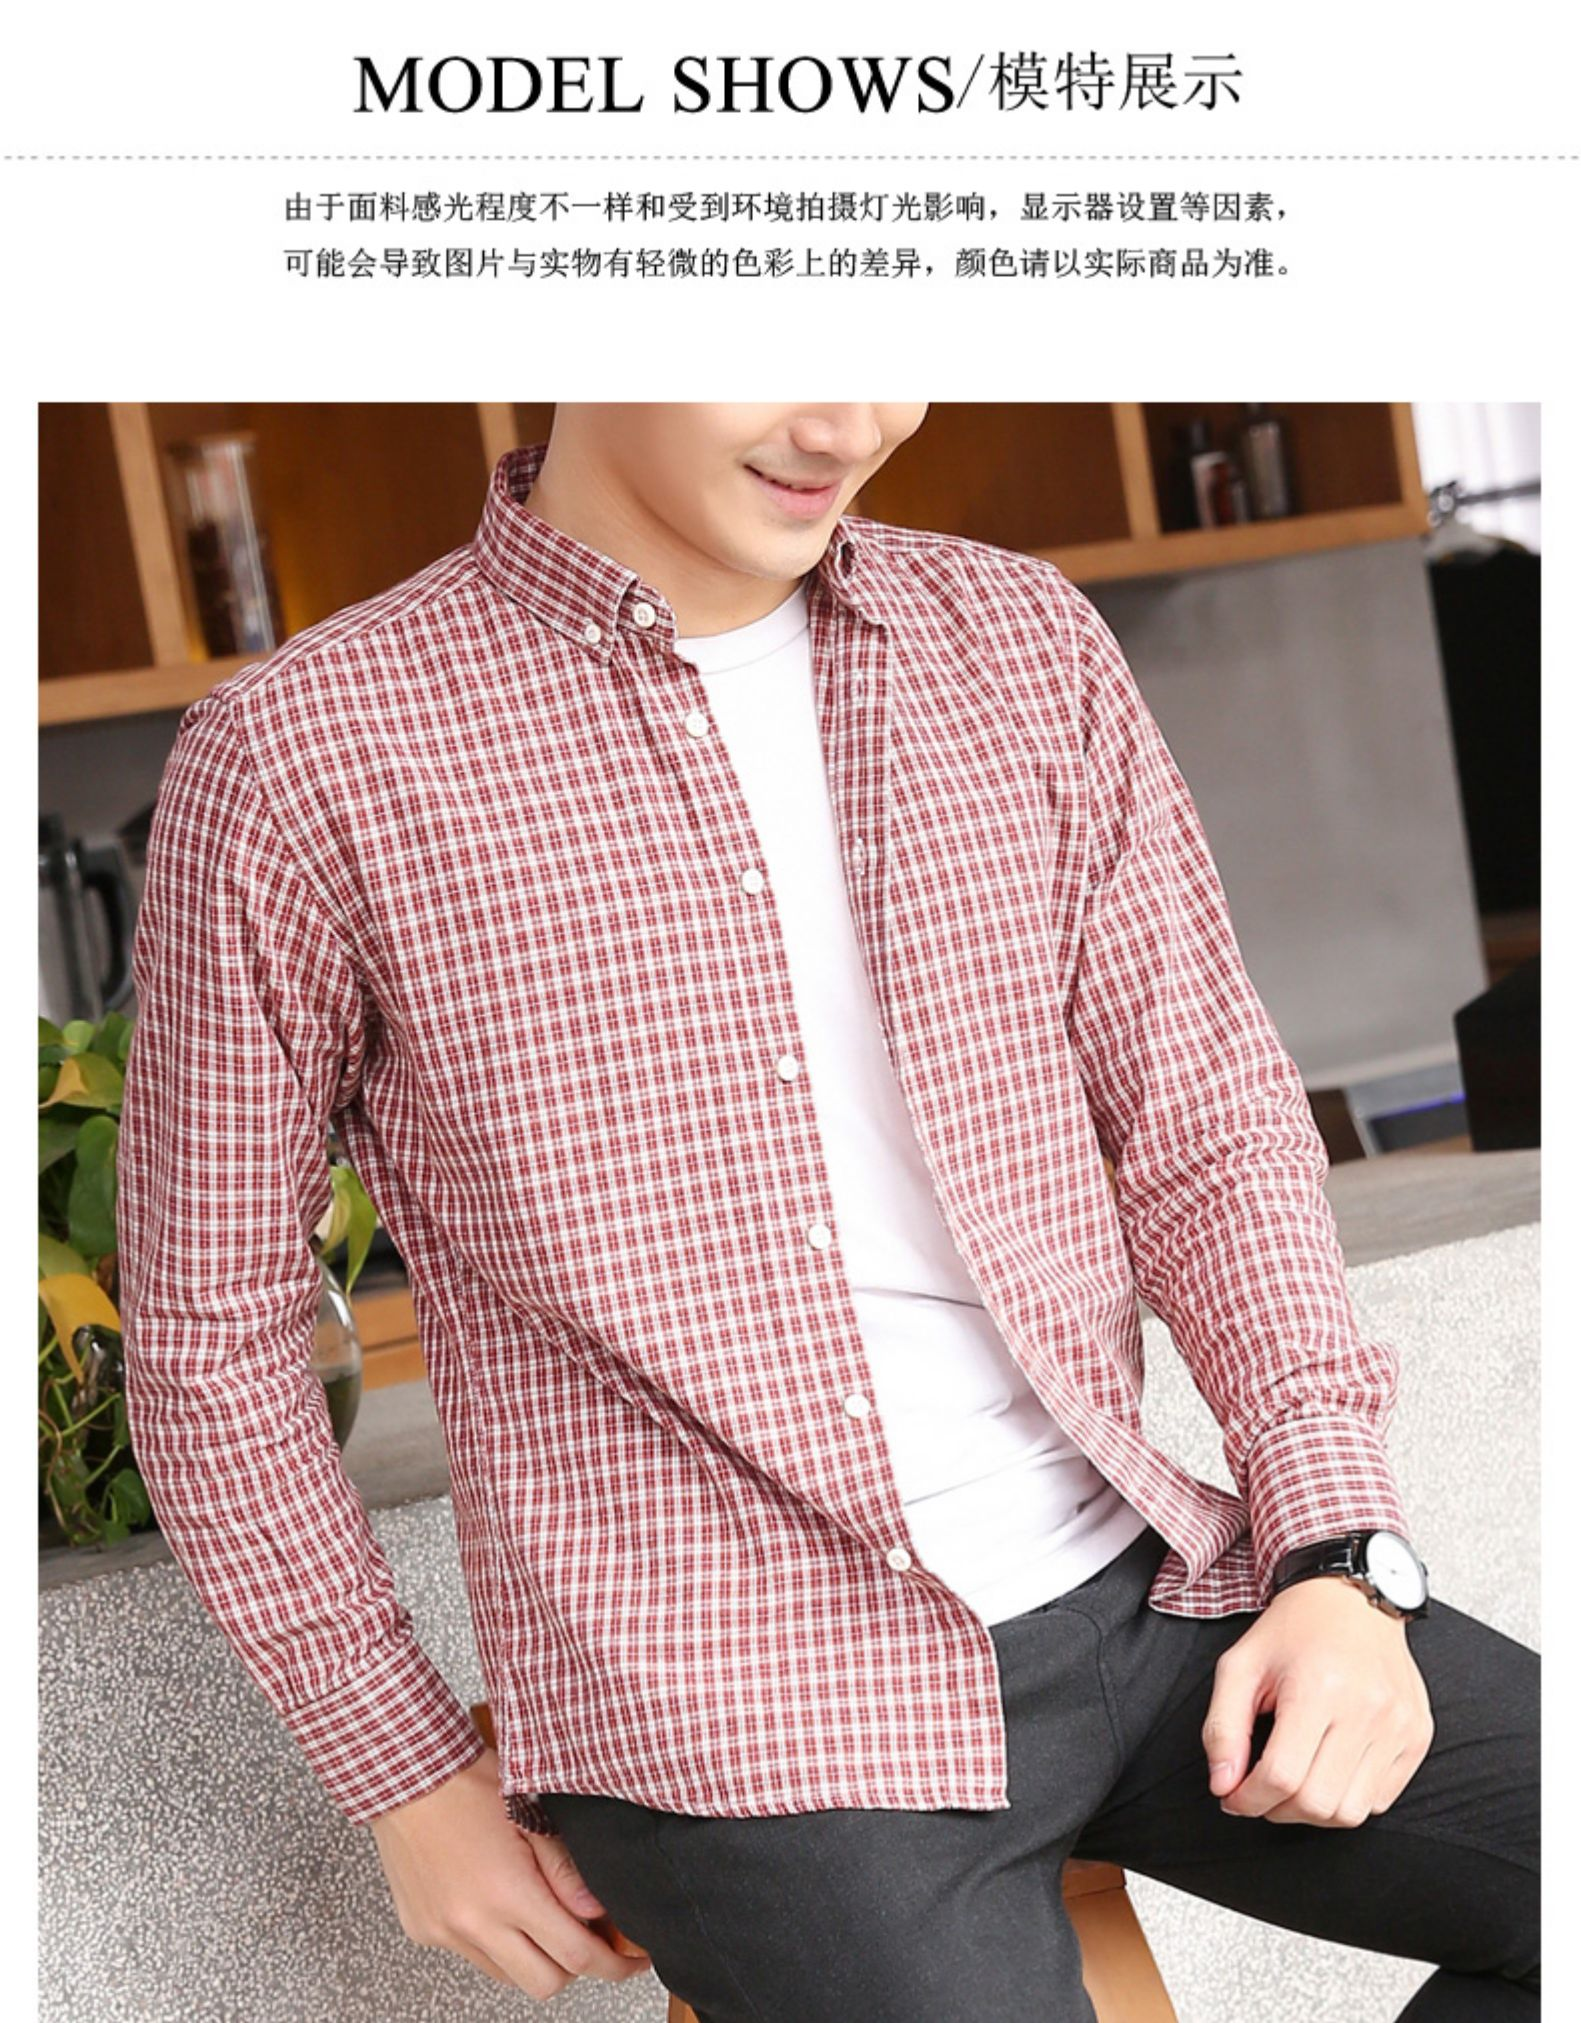 Pure cotton small plaid shirt men's long-sleeved Korean version of the tide brand casual inch clothes spring men's slim handsome shirt jacket 55 Online shopping Bangladesh